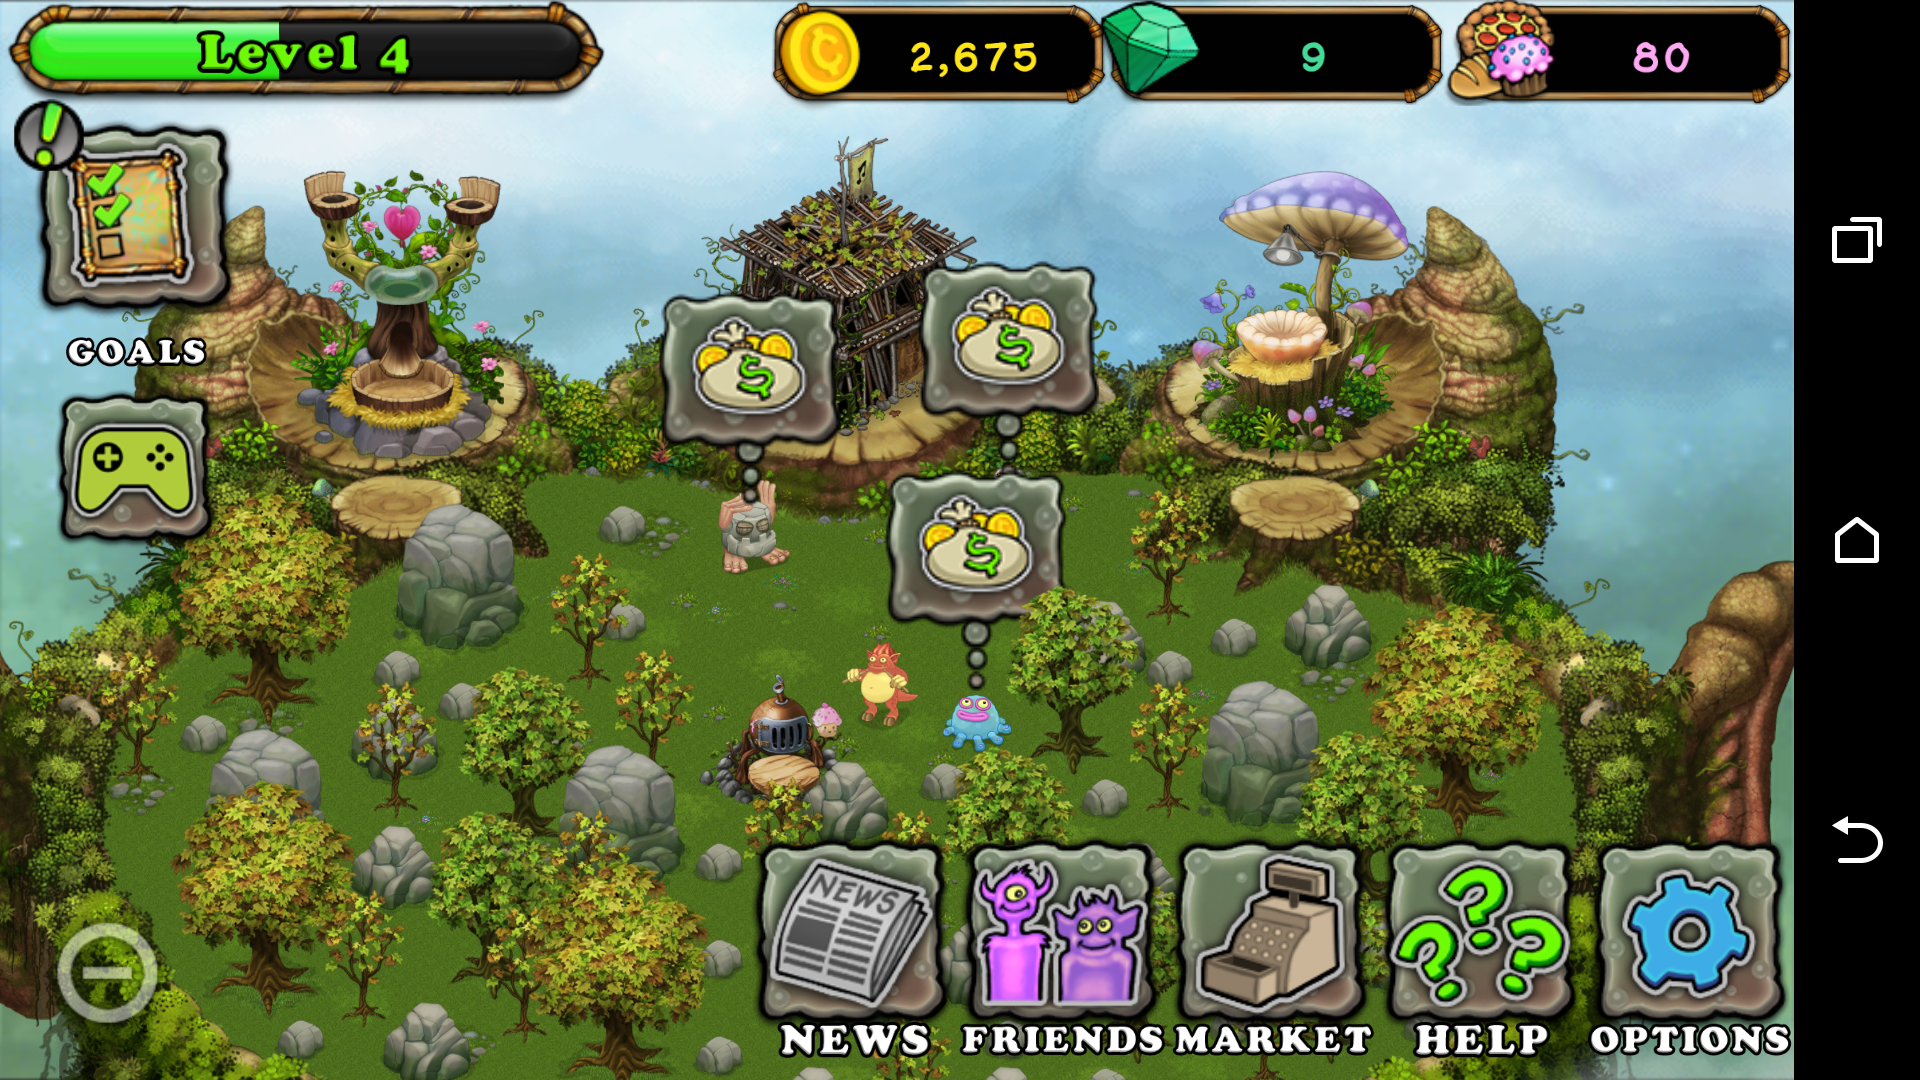 My Singing Monsters - A soothing slobbery lullaby